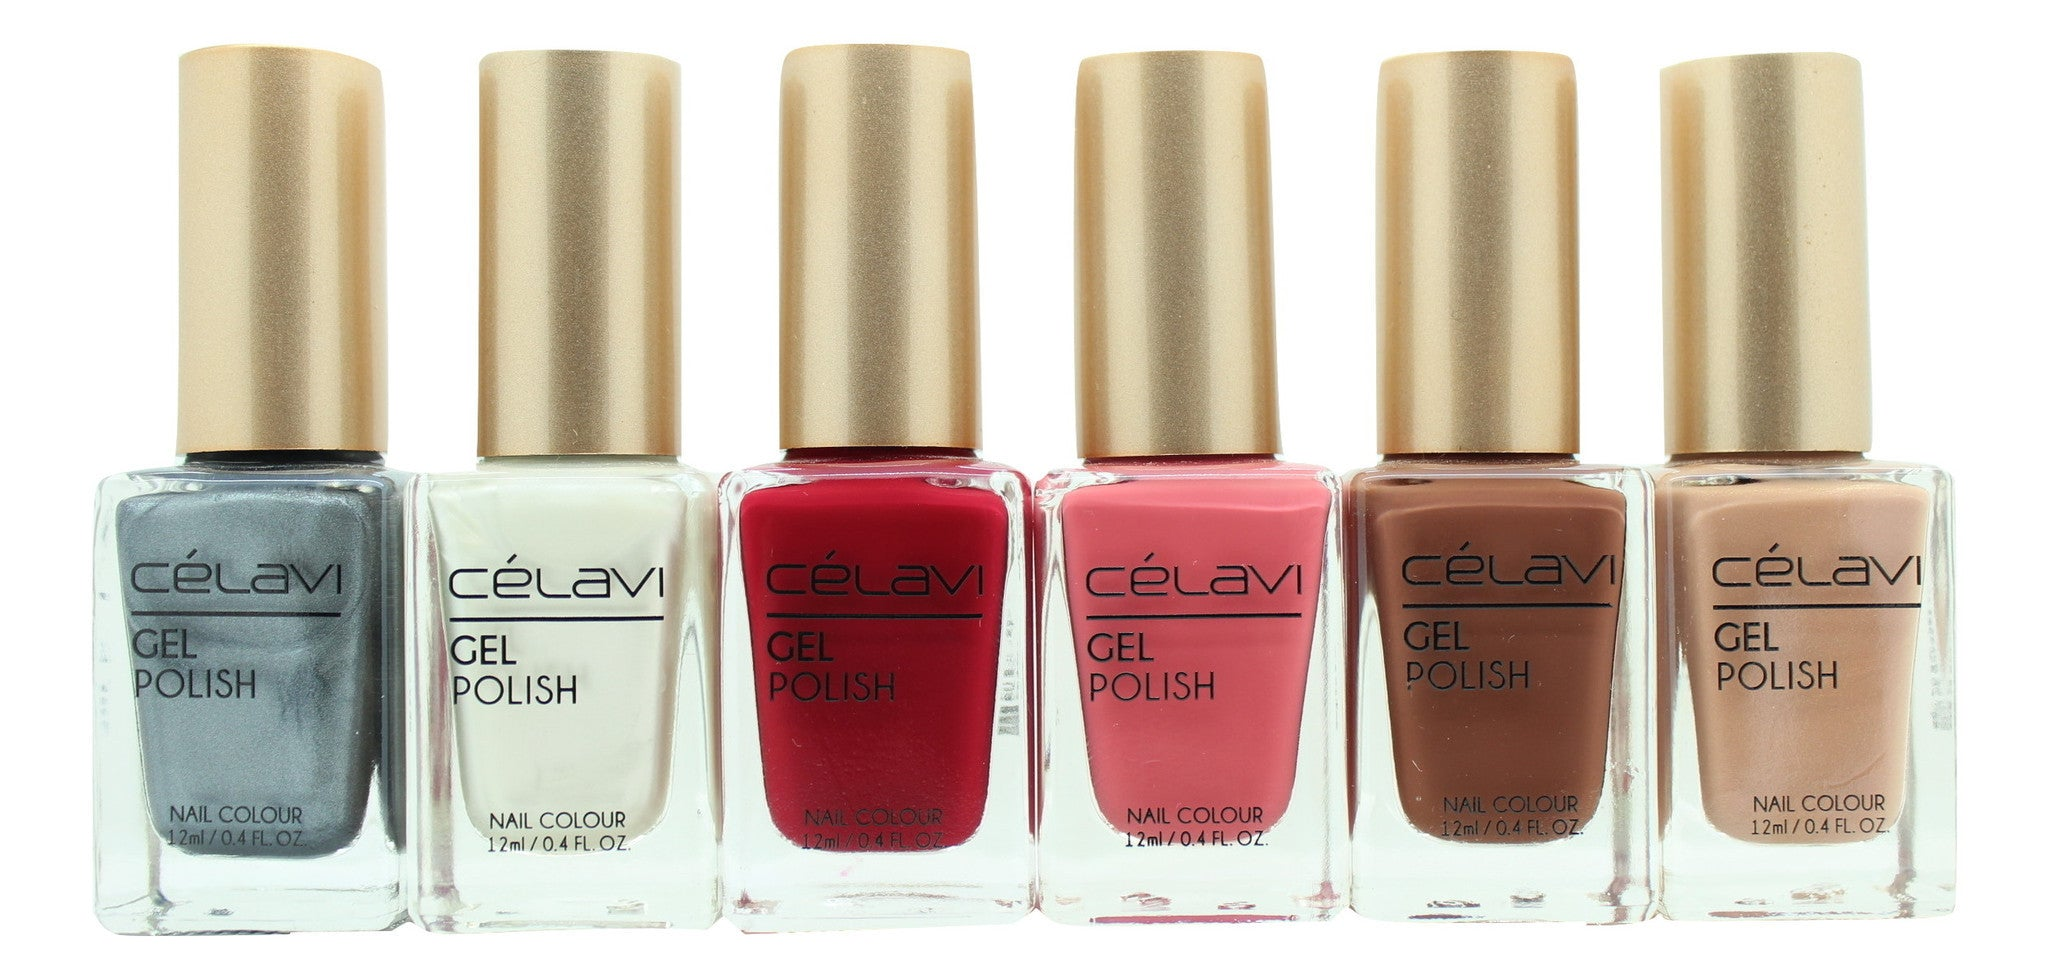 Gel Nail Polish Lacquer 6 Piece Collection Set-Beauty-Celavi Cosmetics-Elegant Fall-Celavi Cosmetics